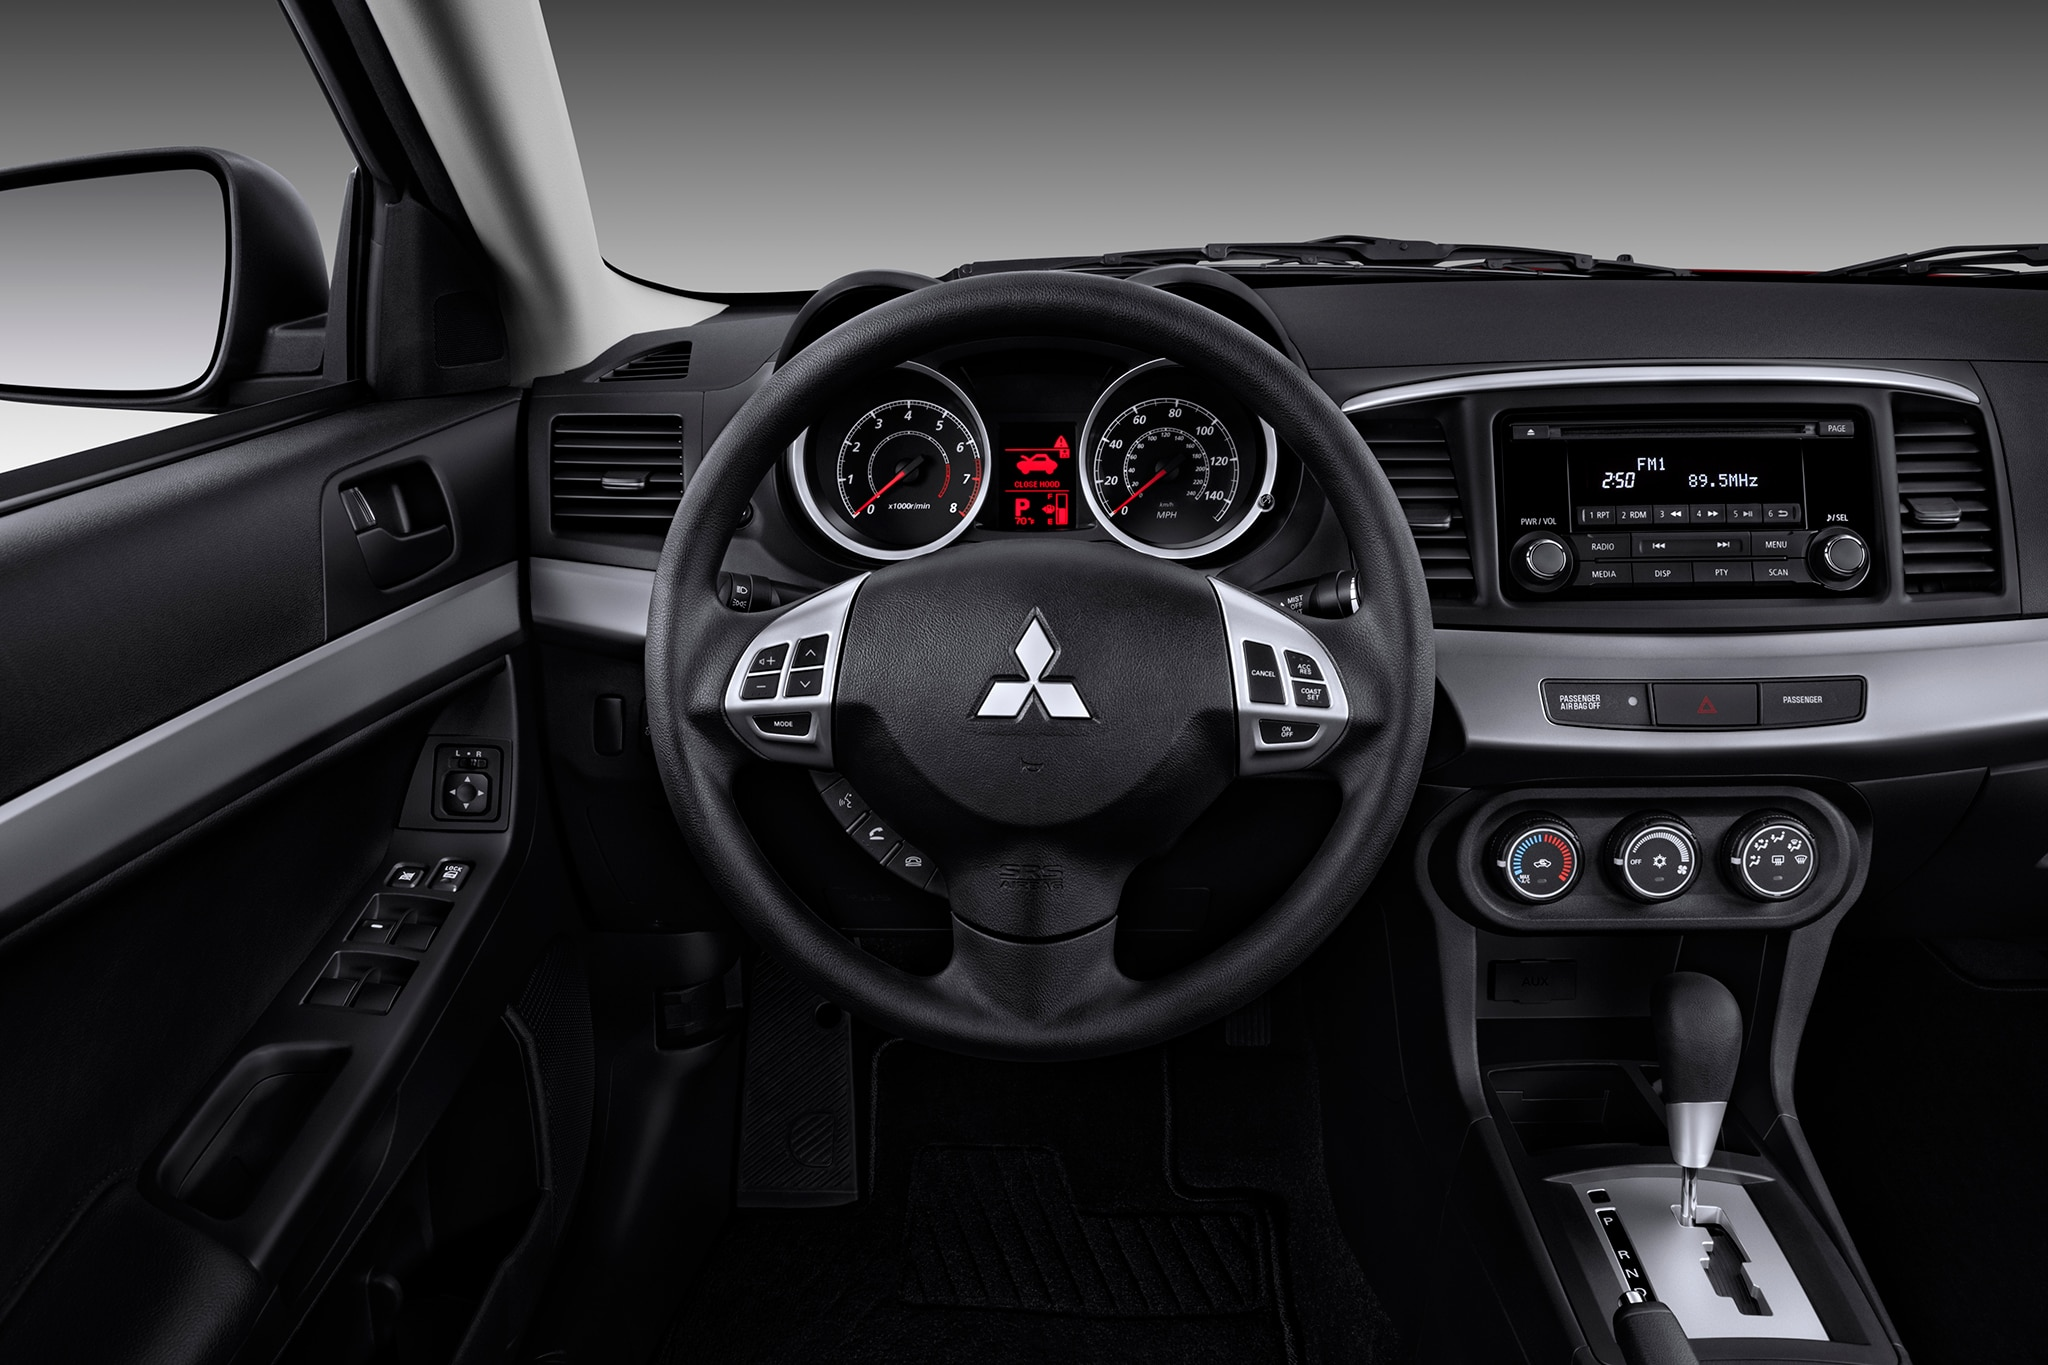 http://st.automobilemag.com/uploads/sites/11/2014/12/2014-Mitsubishi-Lancer-GT-dash-steering-wheel-view-1.jpg